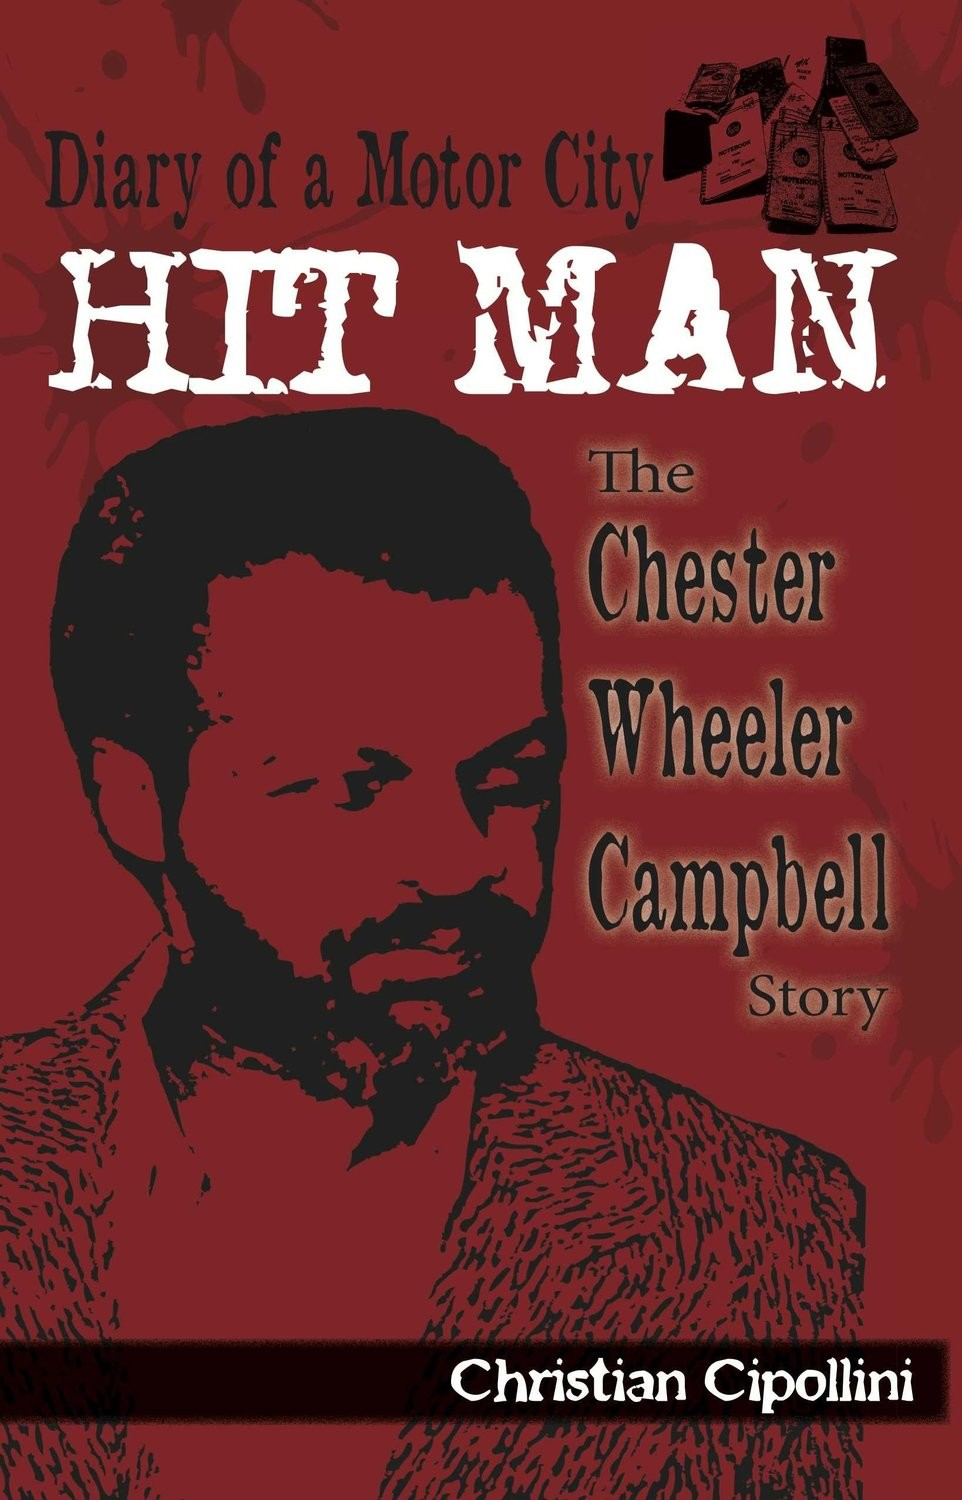 Diary of a Motor City Hitman: The Chester Wheeler Campbell Story